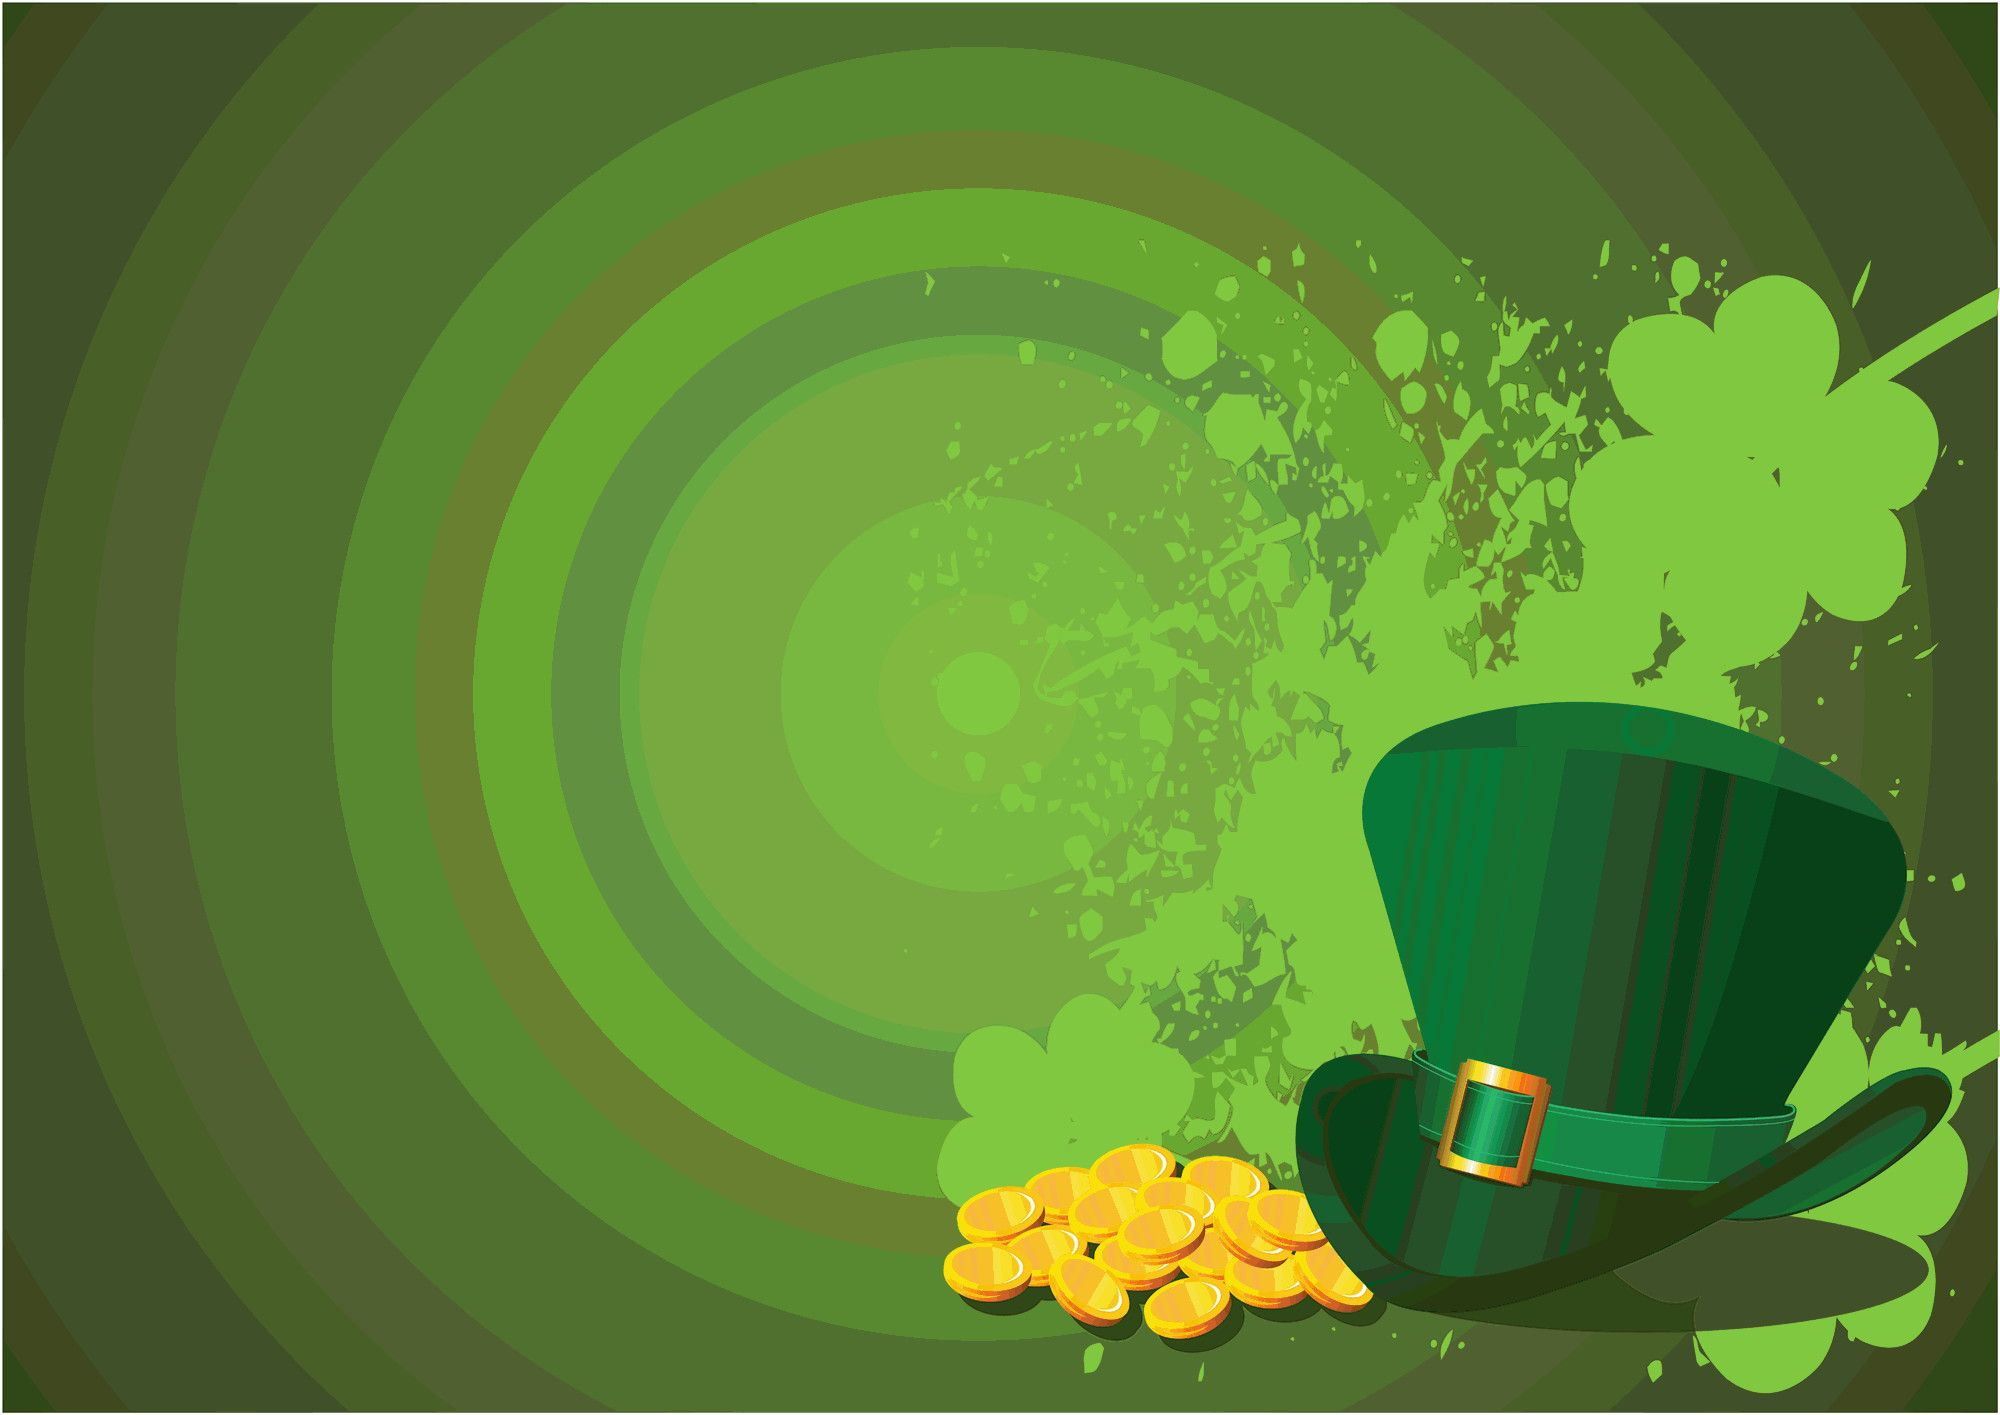 Rainbow St Patrick's Day Wallpapers - Wallpaper Cave